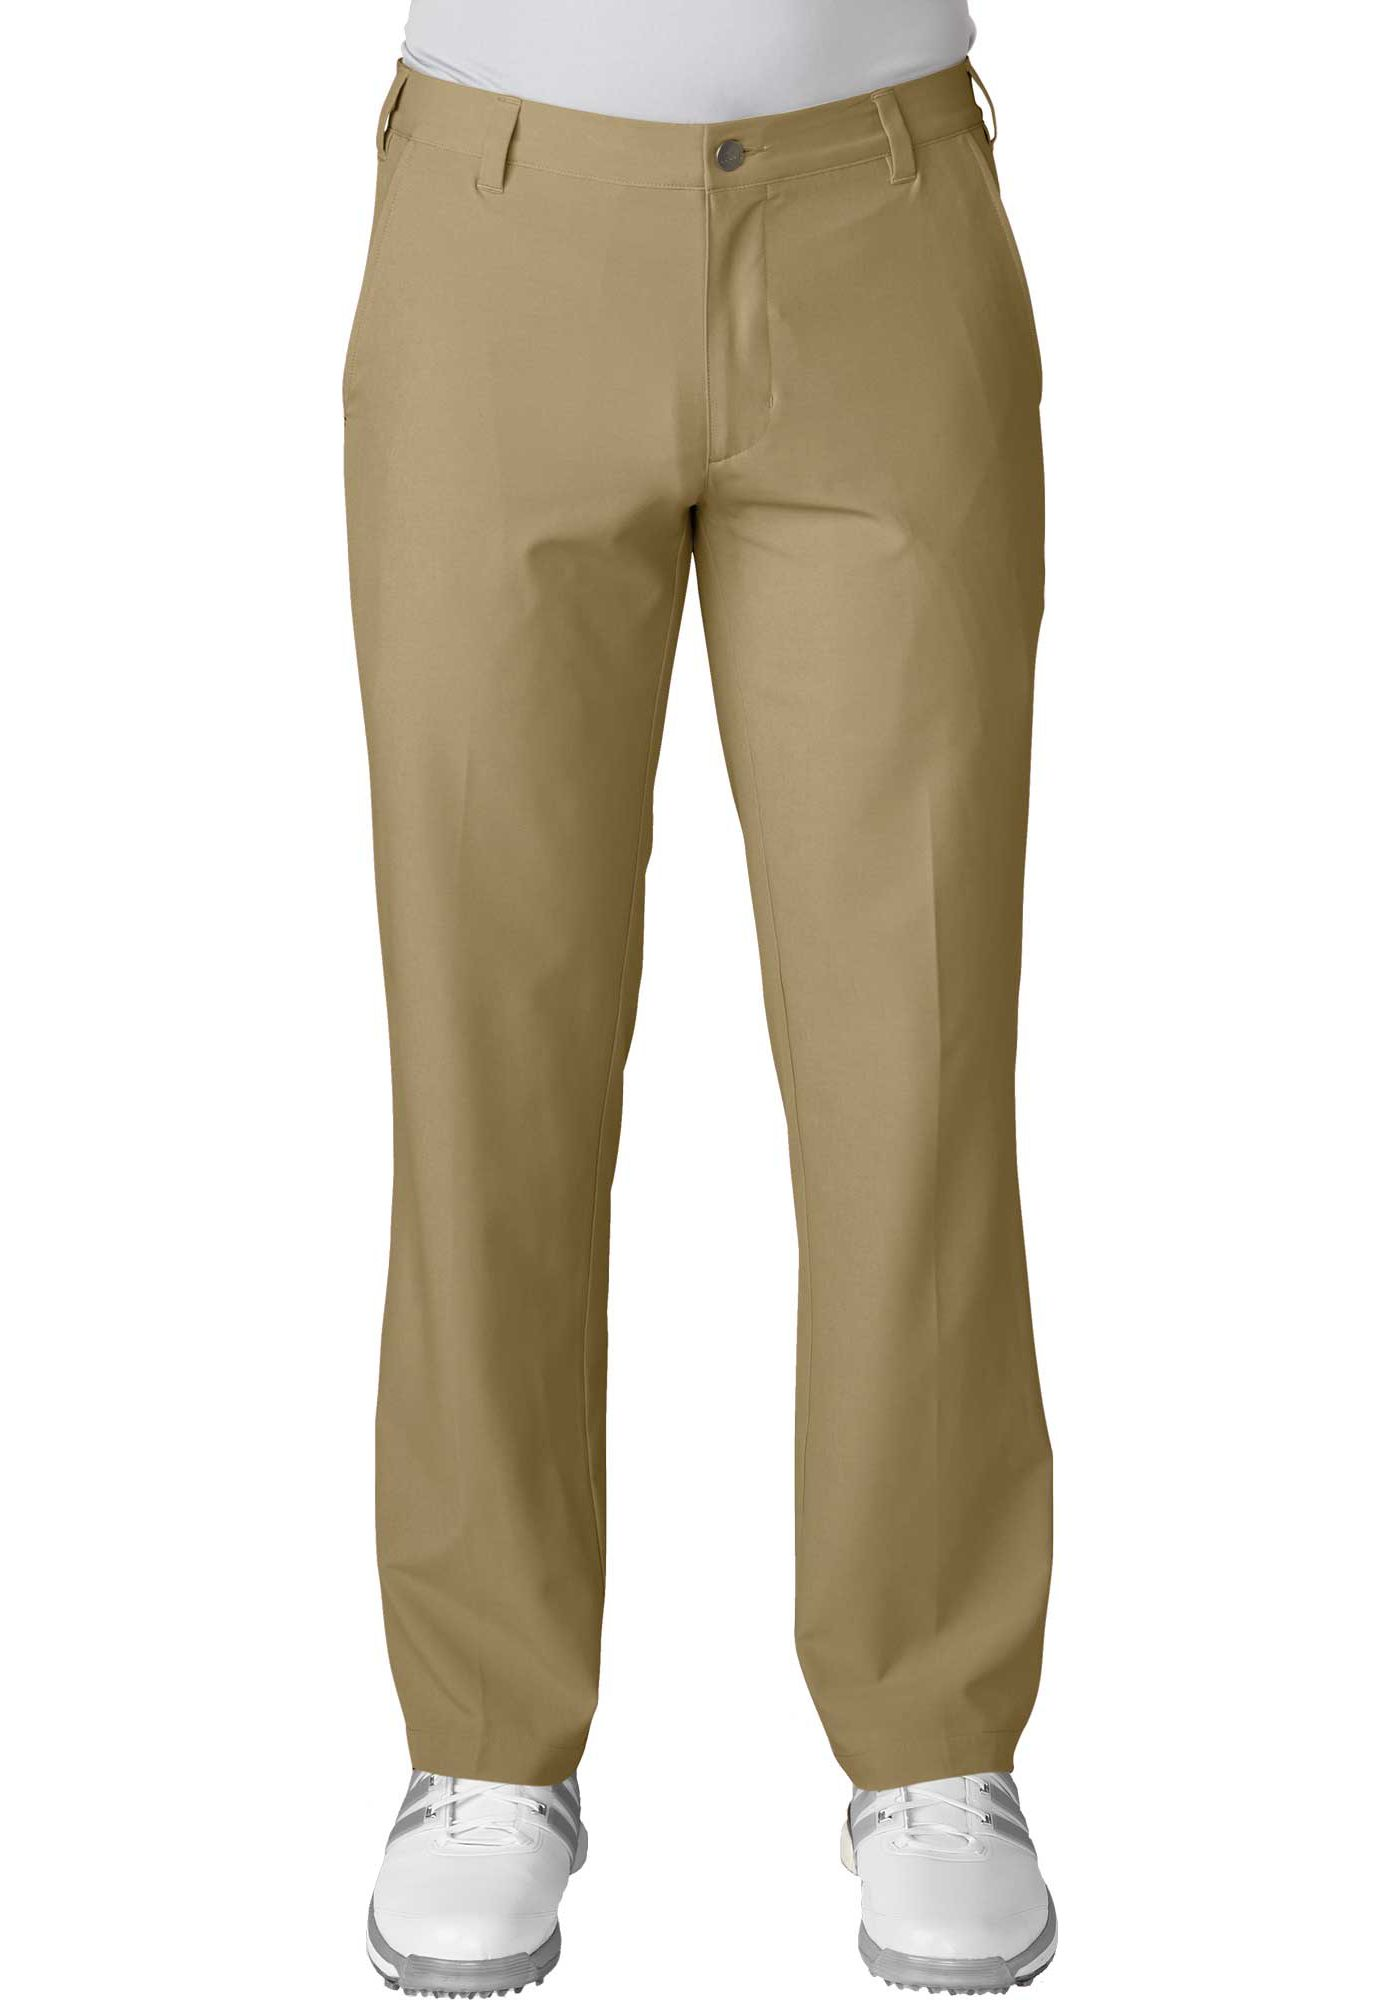 adidas Men's Ultimate365 Golf Pants - Discontinued Article